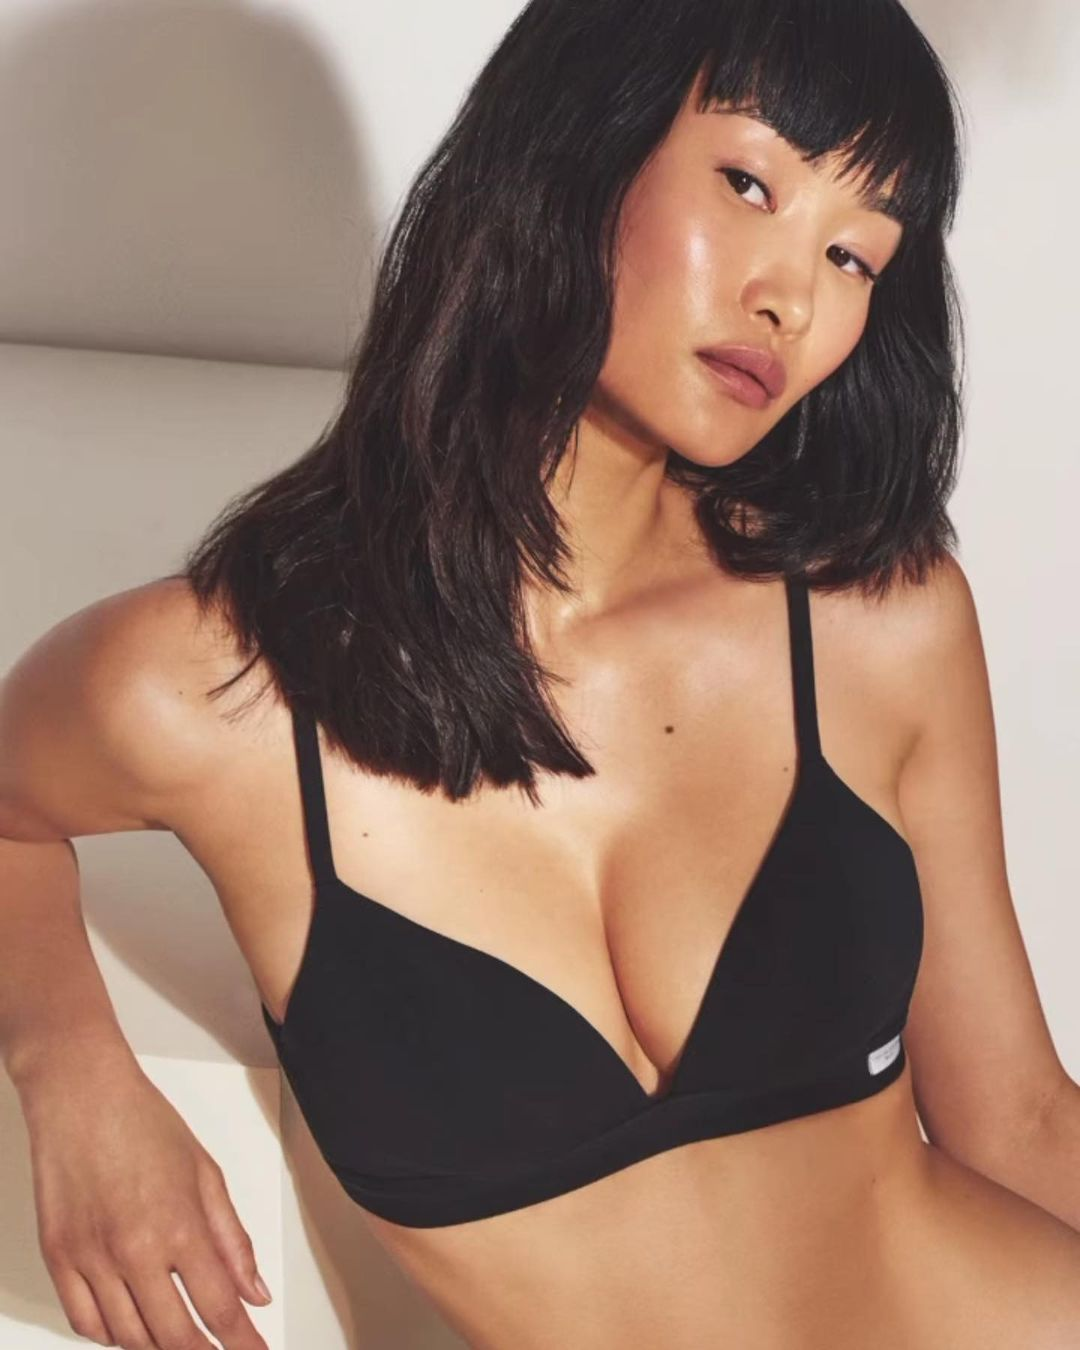 Miki Hamano is among the most remarkable Japanese models of 2021 8